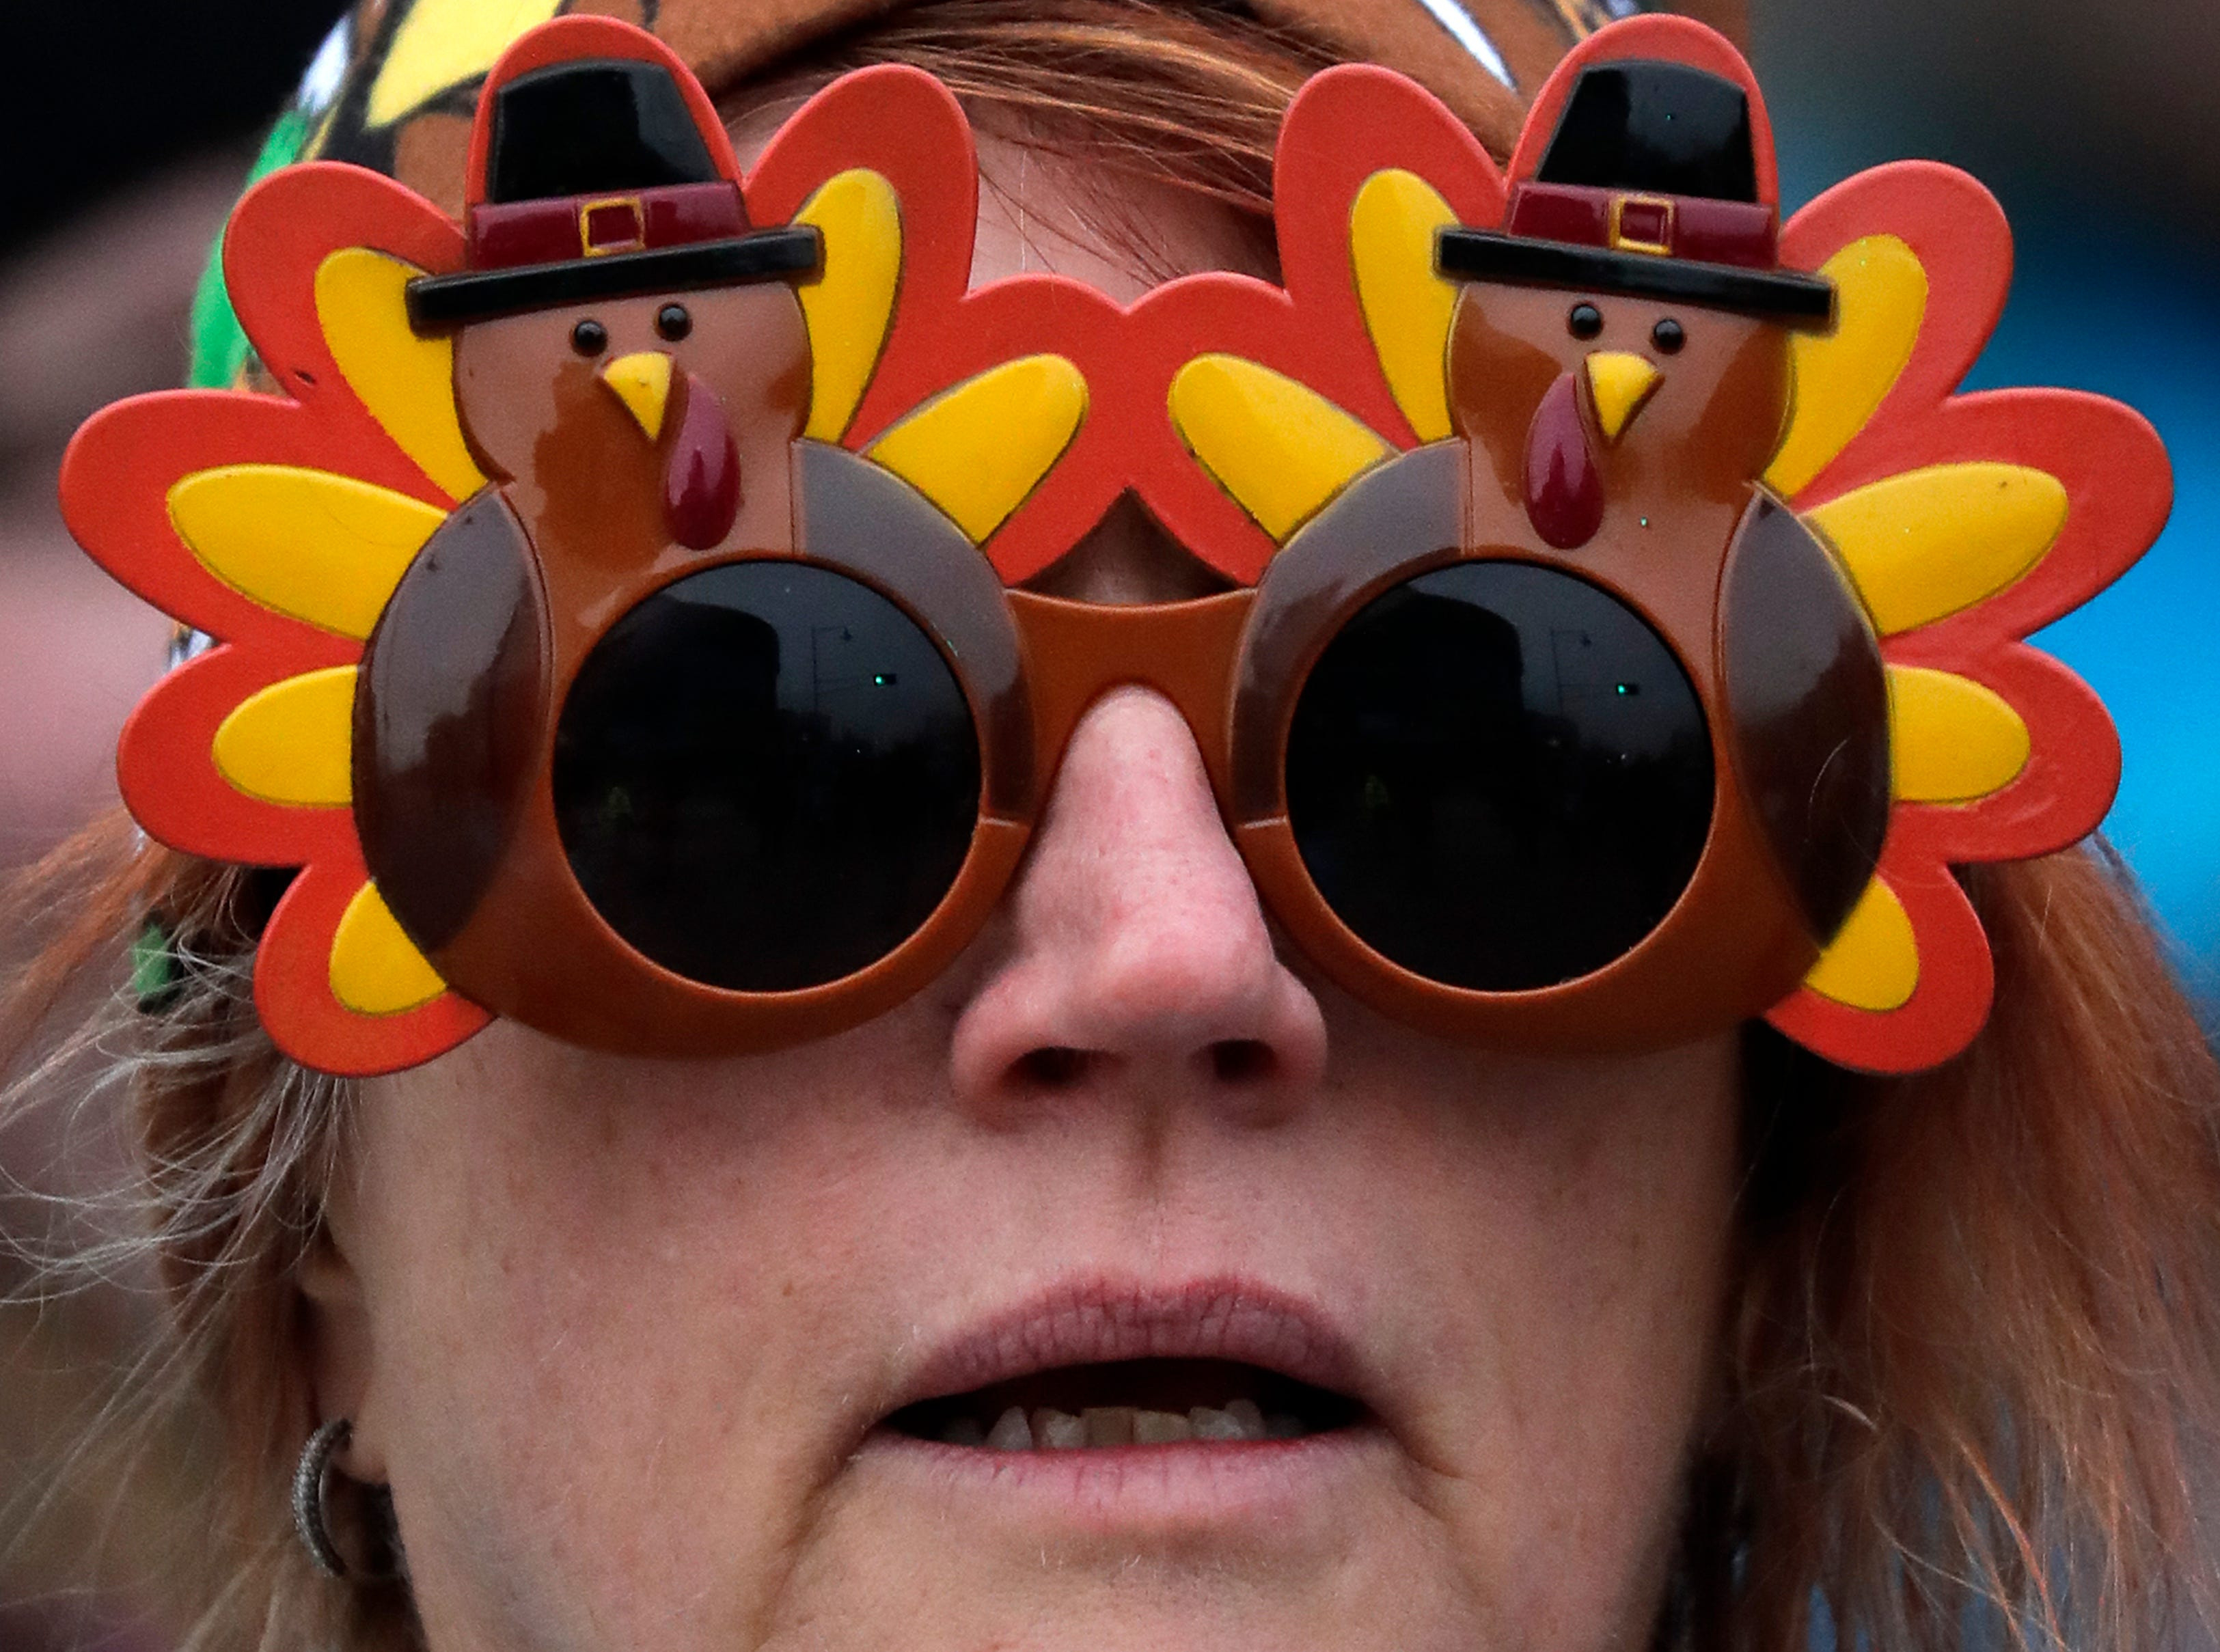 A participant dons turkey sunglasses during the 11th Annual Festival Foods Turkey Trot Thursday, November 22, 2018, in Appleton, Wis. 